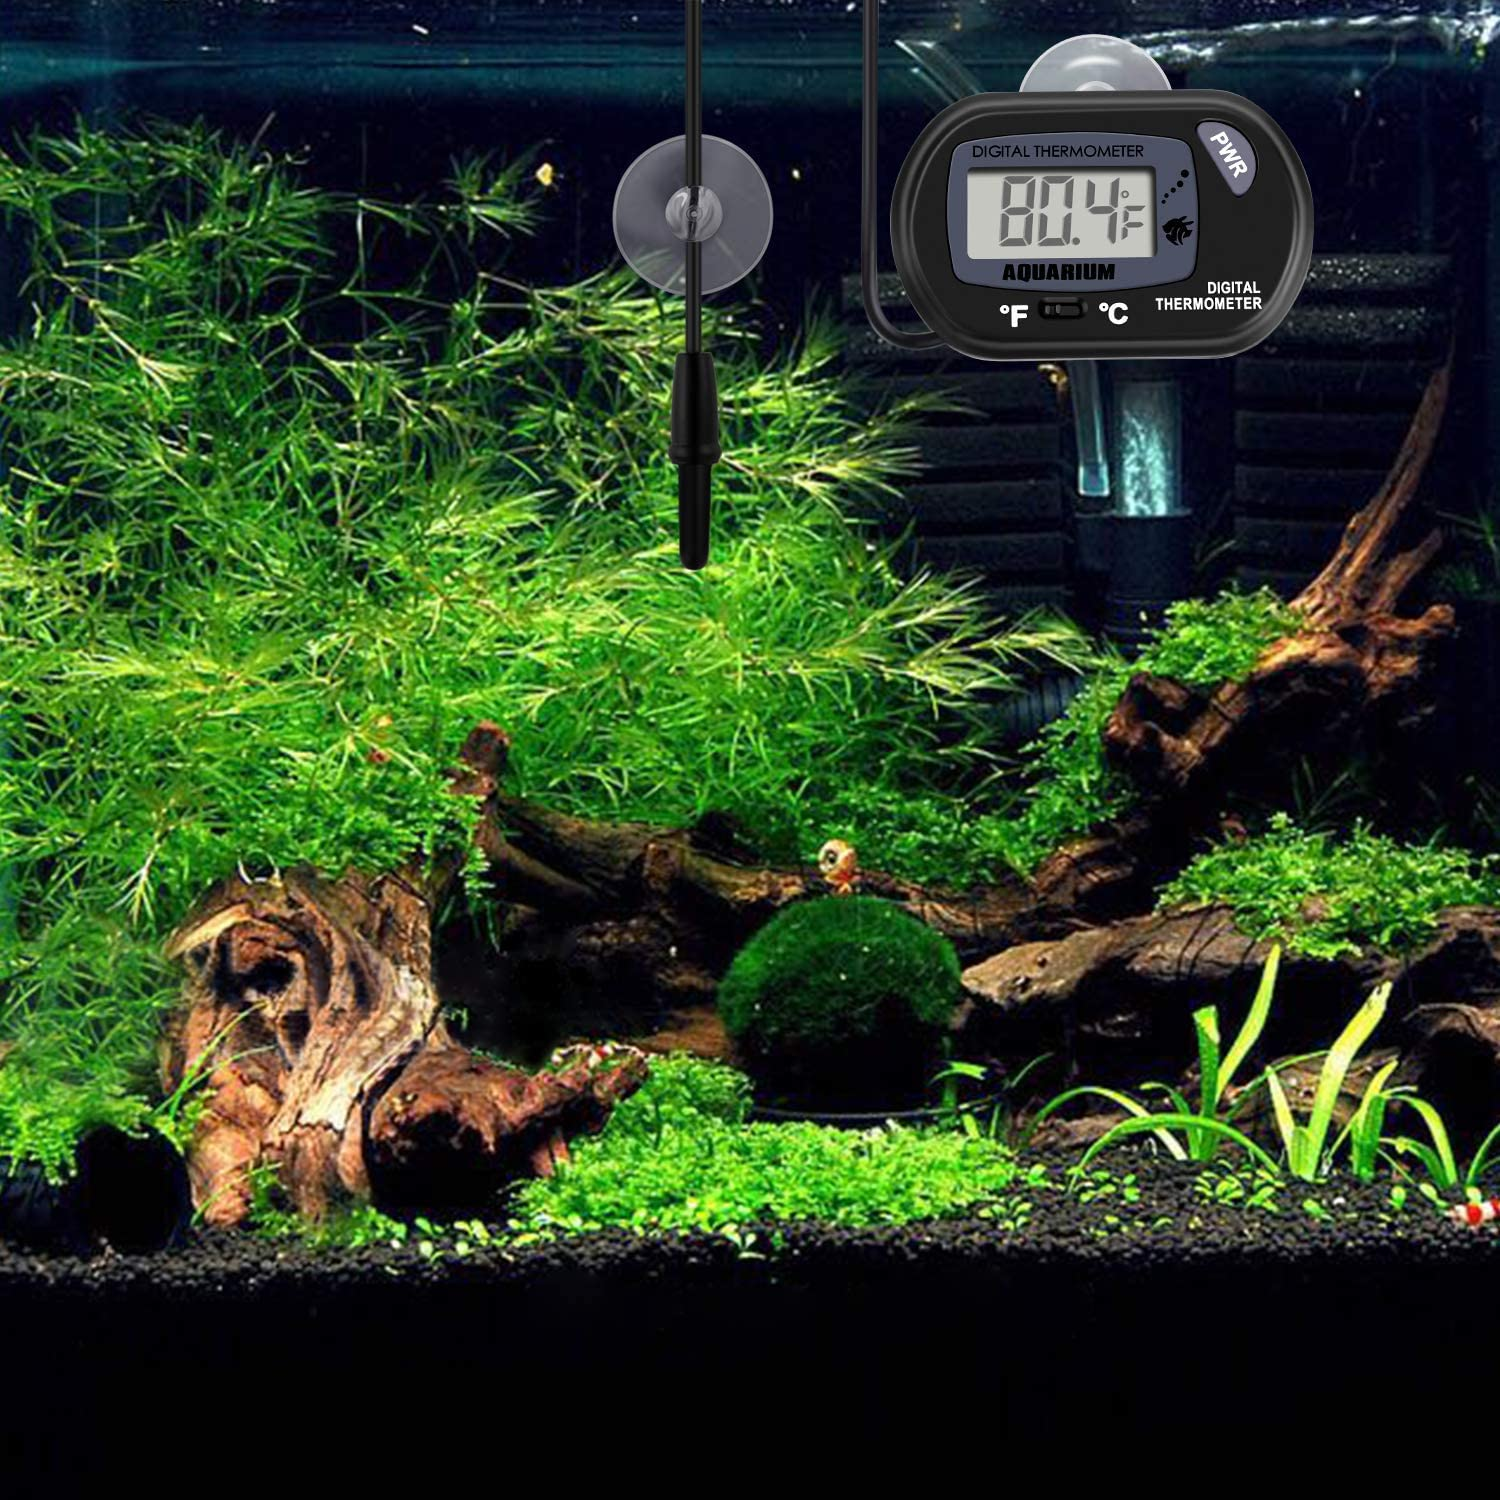 Neptonion Aquarium Thermometer LCD Digital Aquarium Thermometer with Suction Cup Fish Tank Water Terrarium Temperature for Fish and Reptiles Like Lizard and Turtle